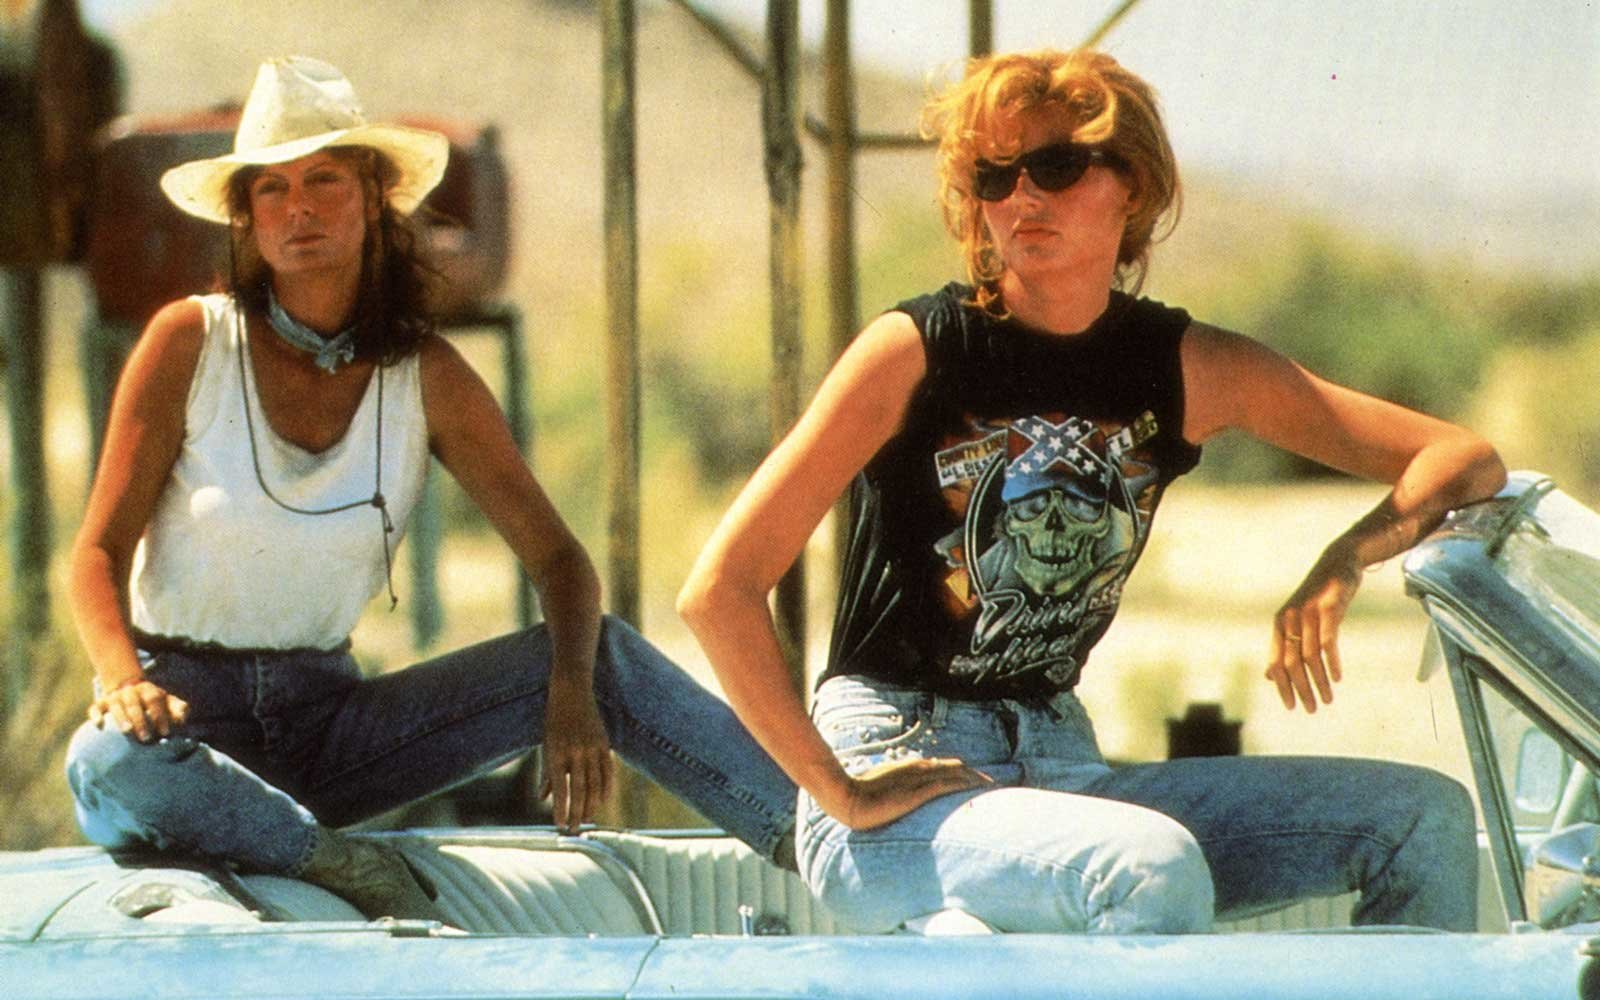 Thelma and Lousie 1991 Film